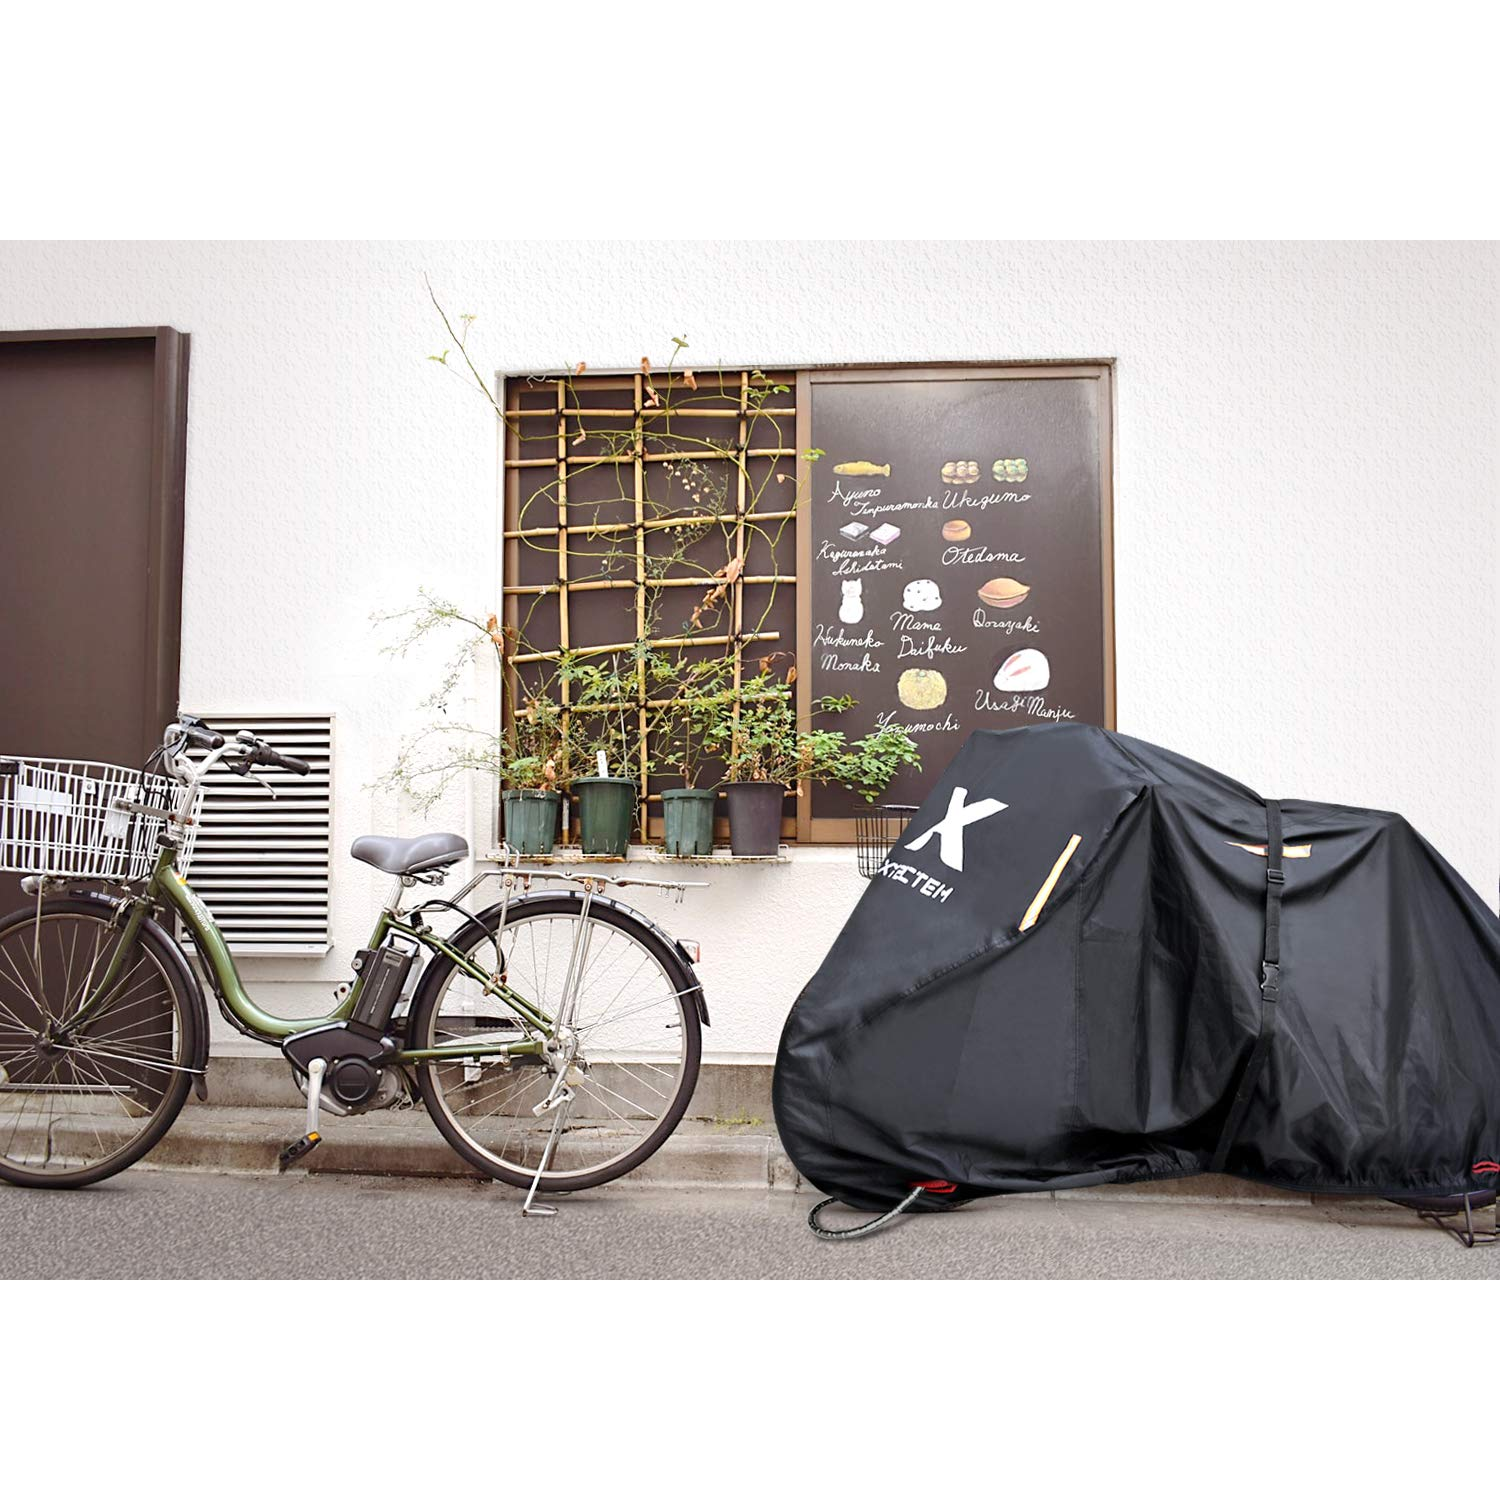 XYZCTEM Bike Cover, Universal Fit for Bicycles with up to 29in Wheels